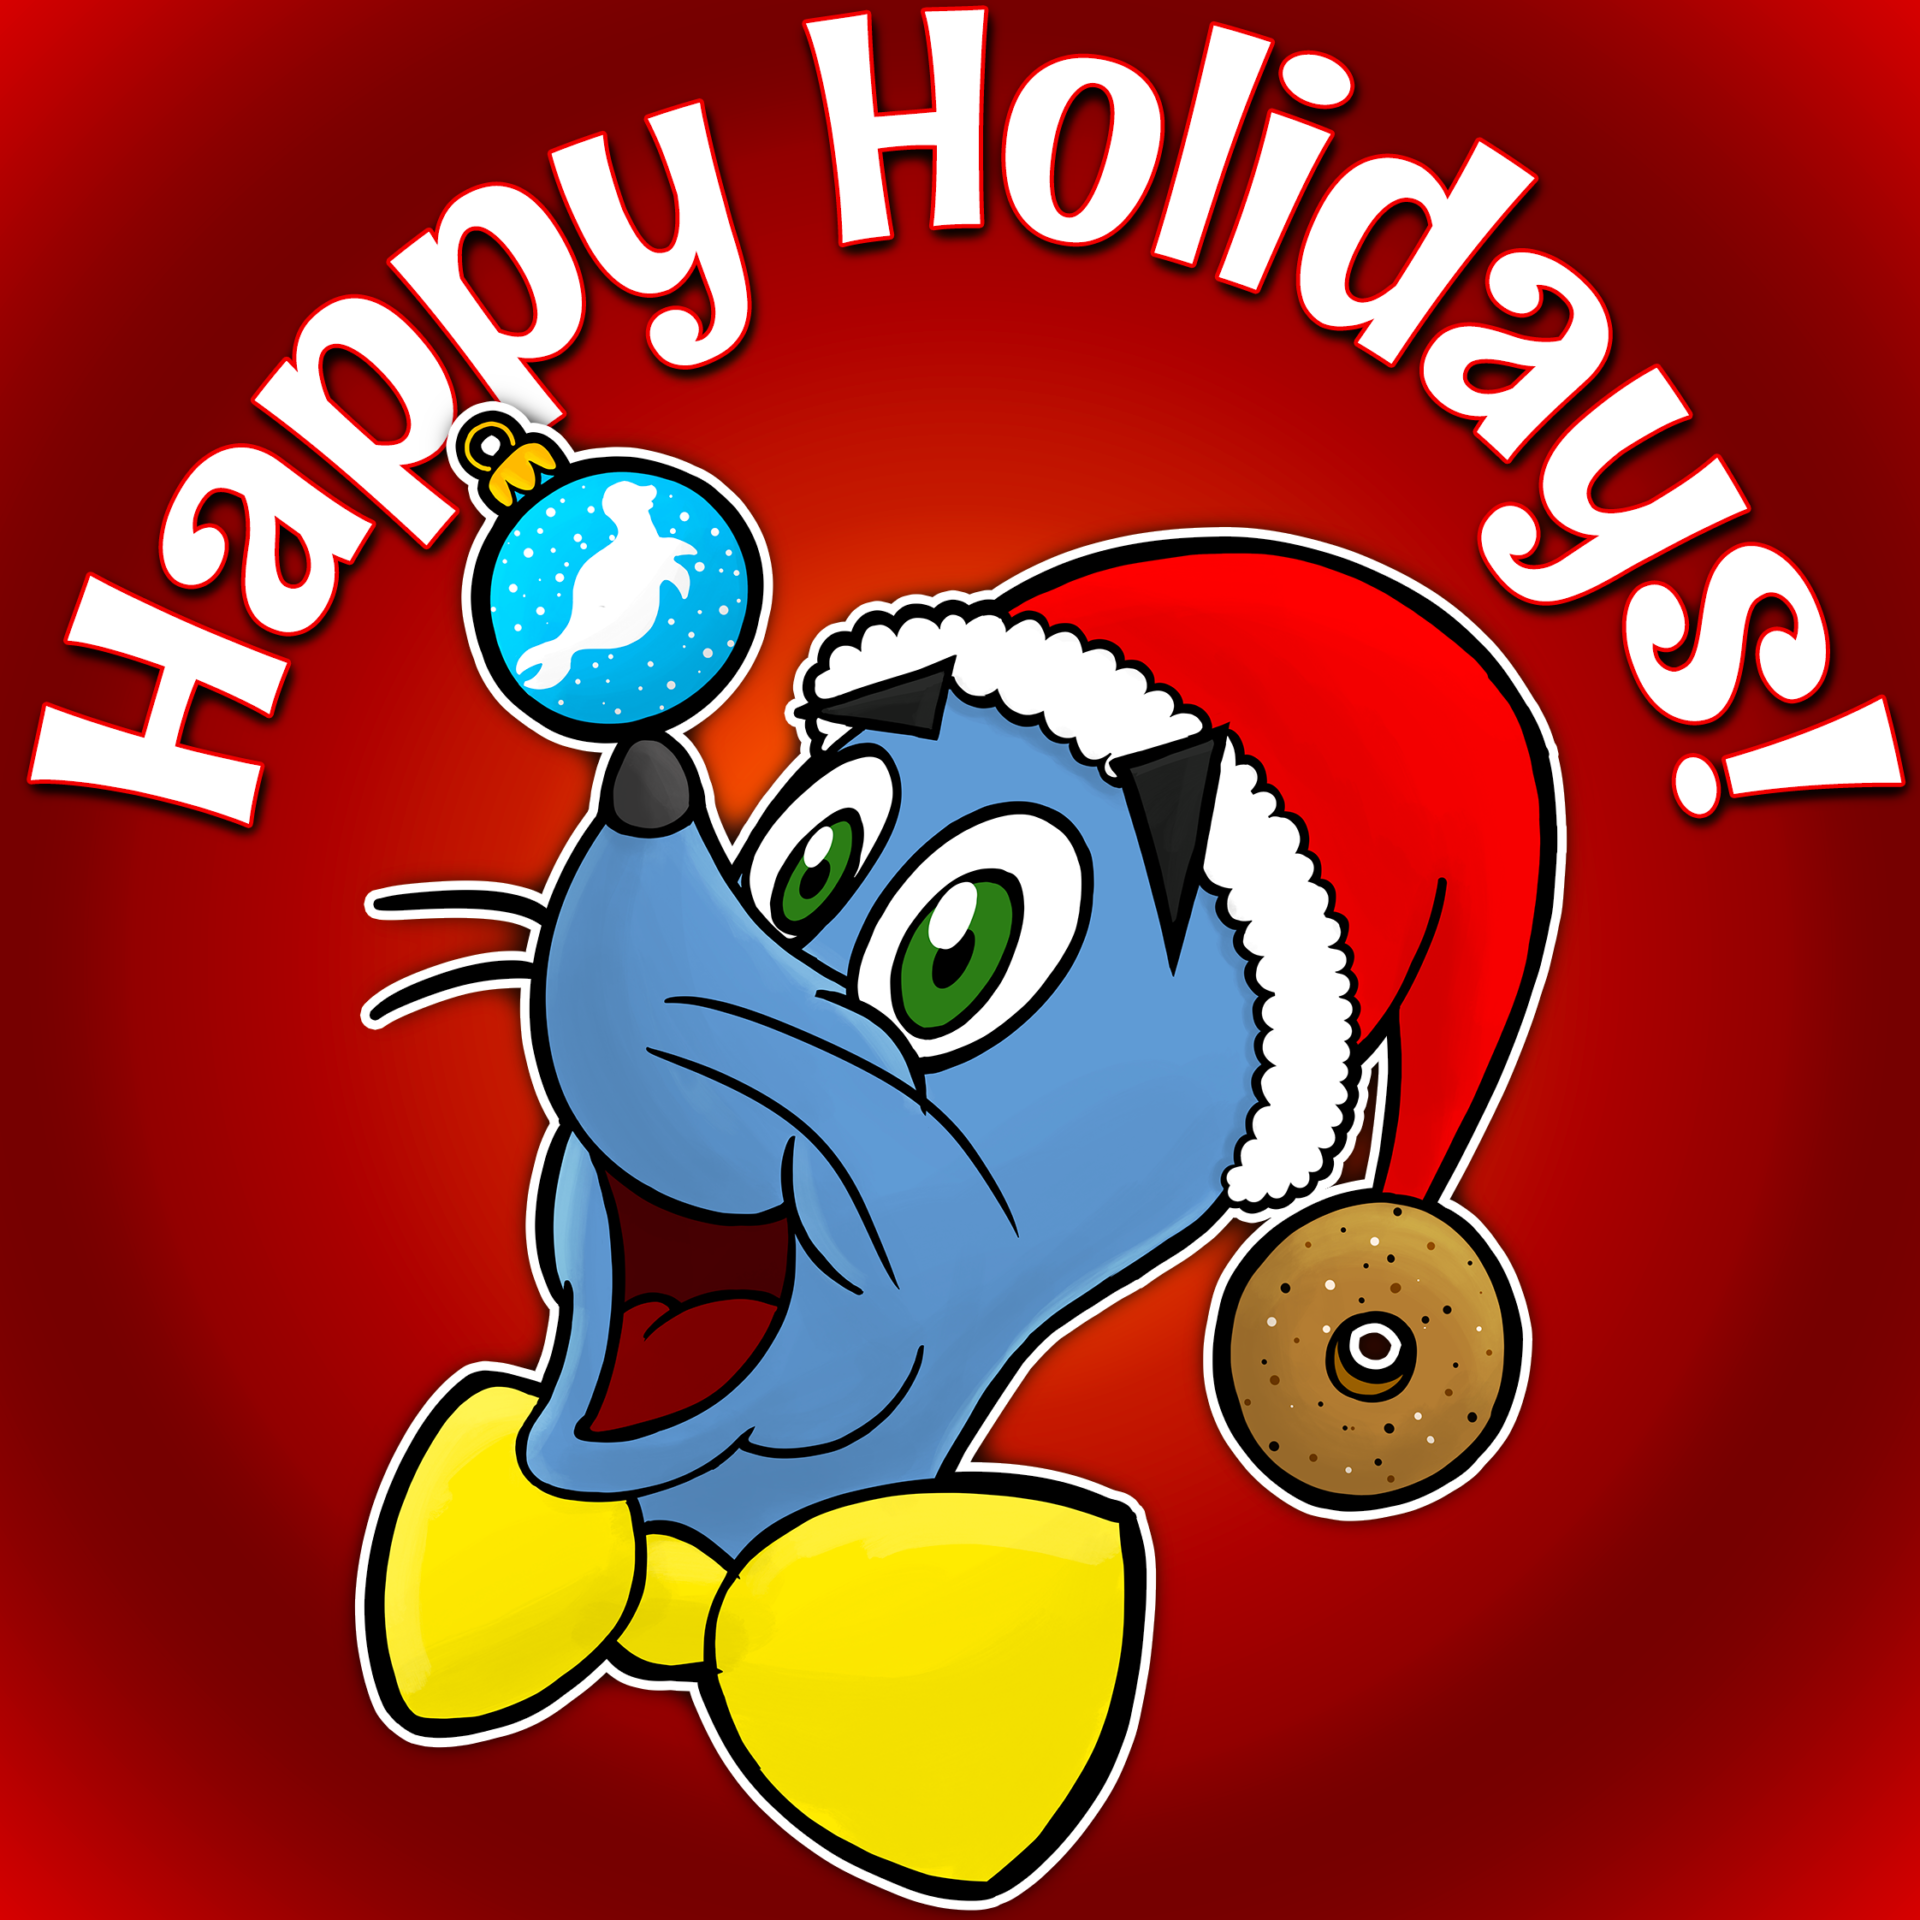 Blue Seal Bagels - Happy Holidays!